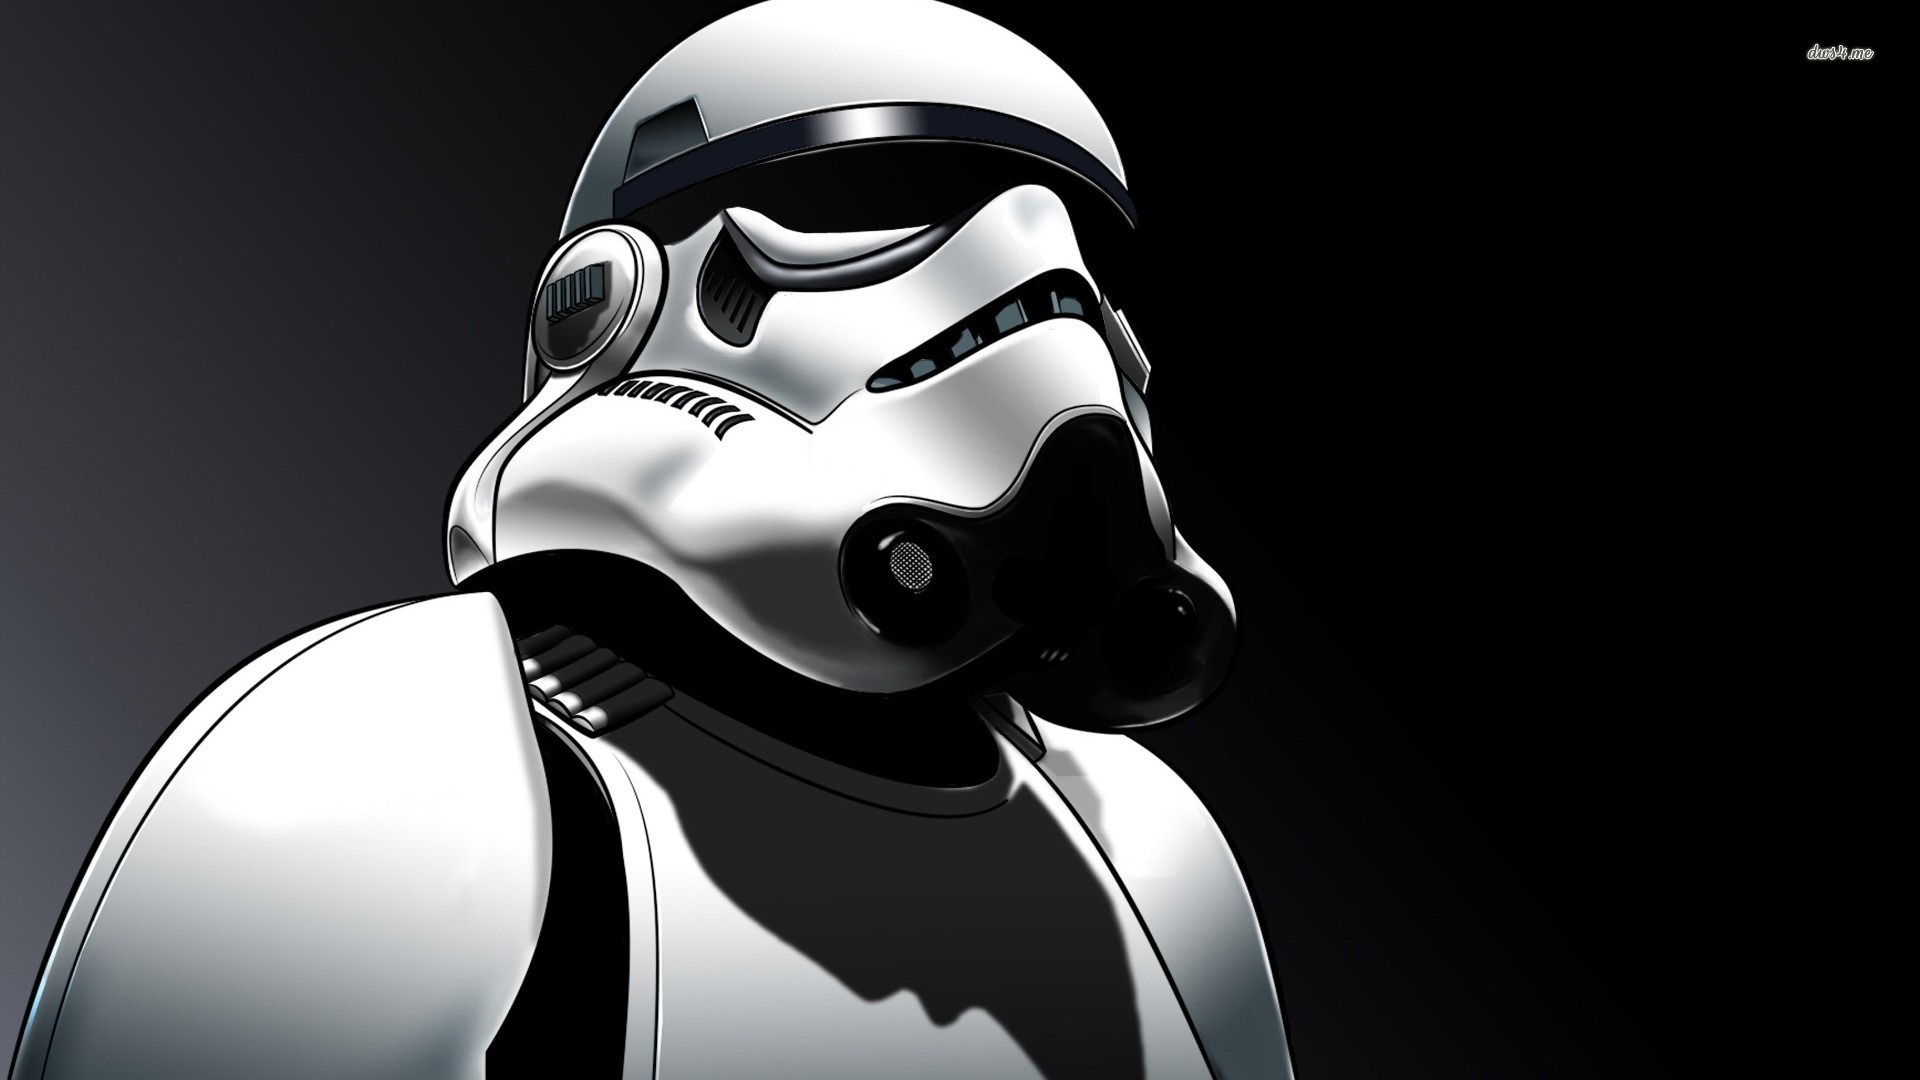 Storm Trooper Wallpaper on WallpaperSafari